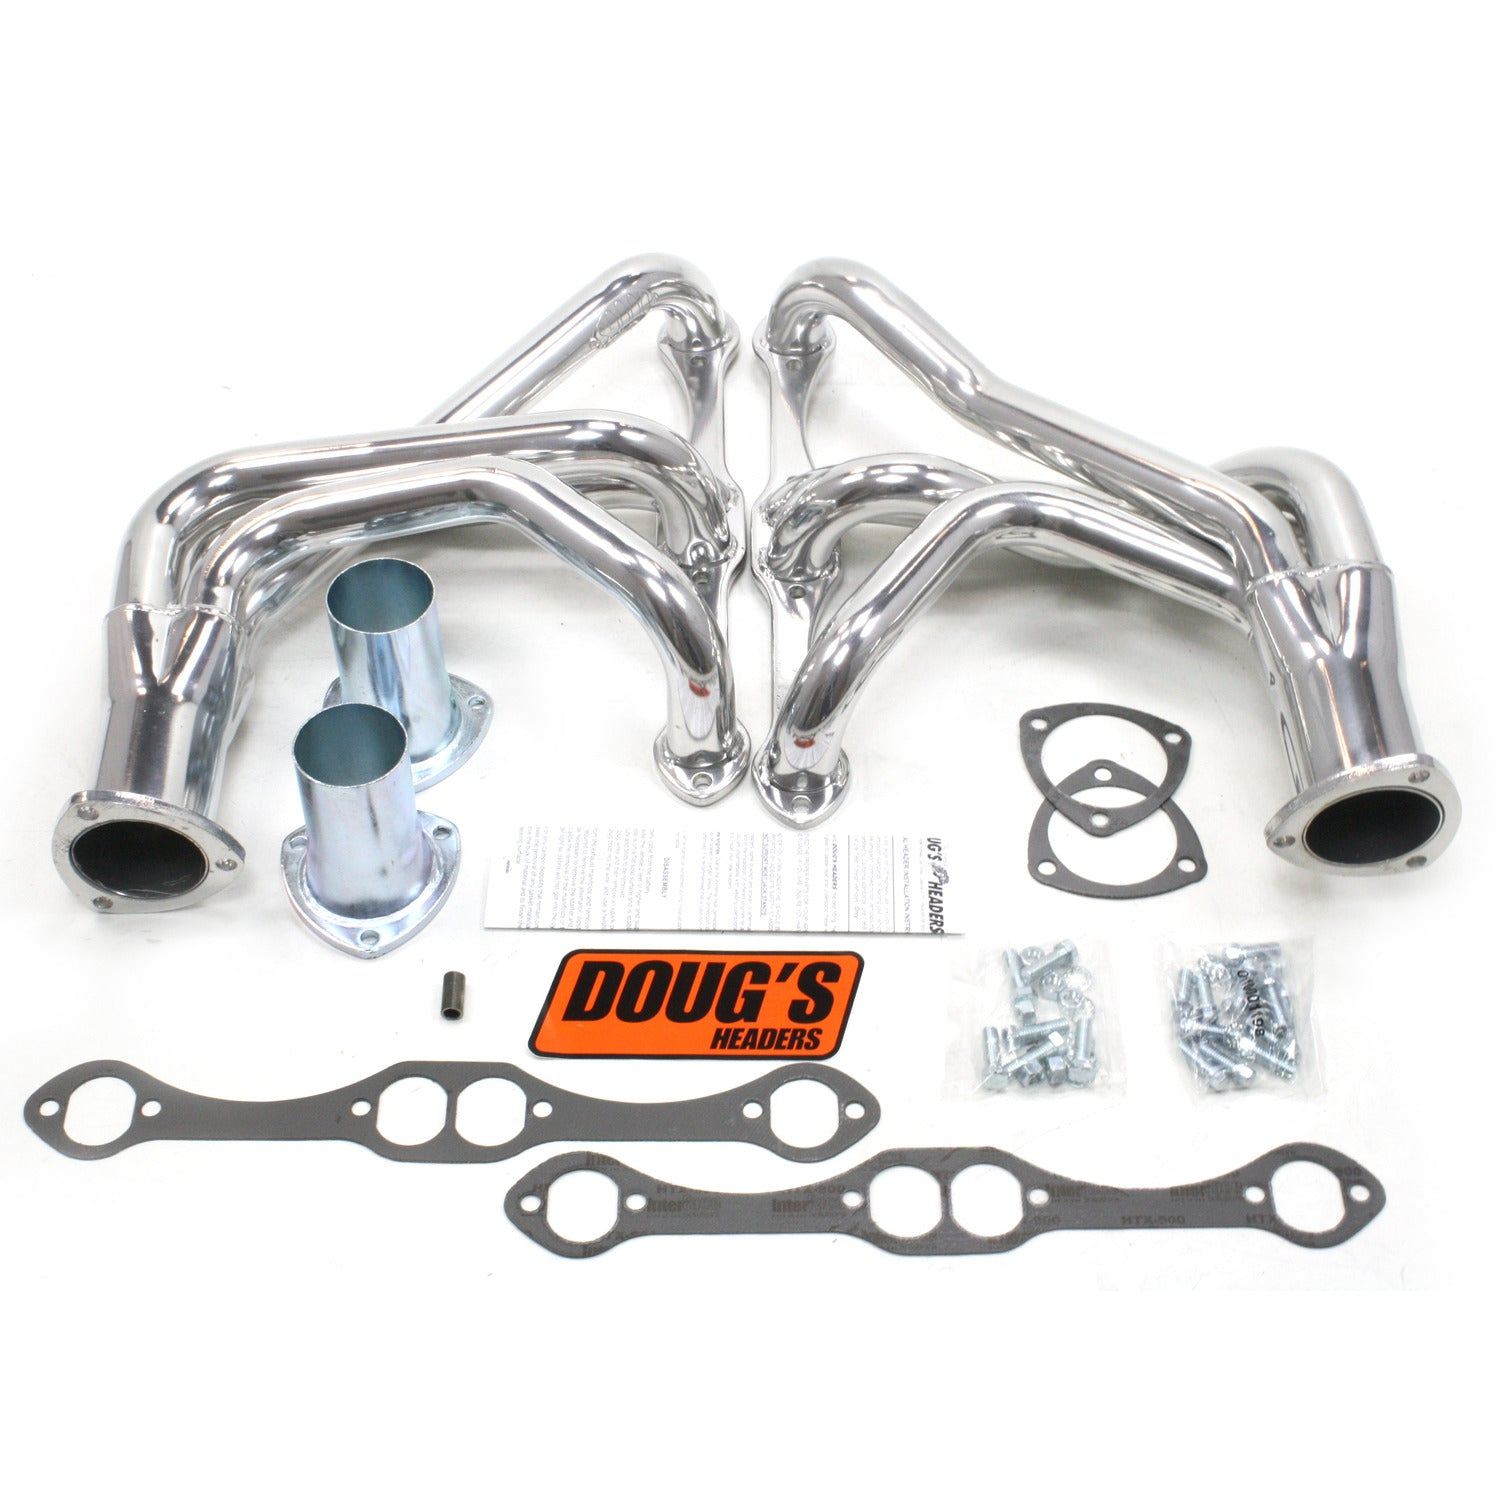 "Doug's Headers D350 1 5/8"" 4-Tube Full Length Header Chevrolet Corvette Small Block Chevrolet 63-74 Metallic Ceramic Coating"